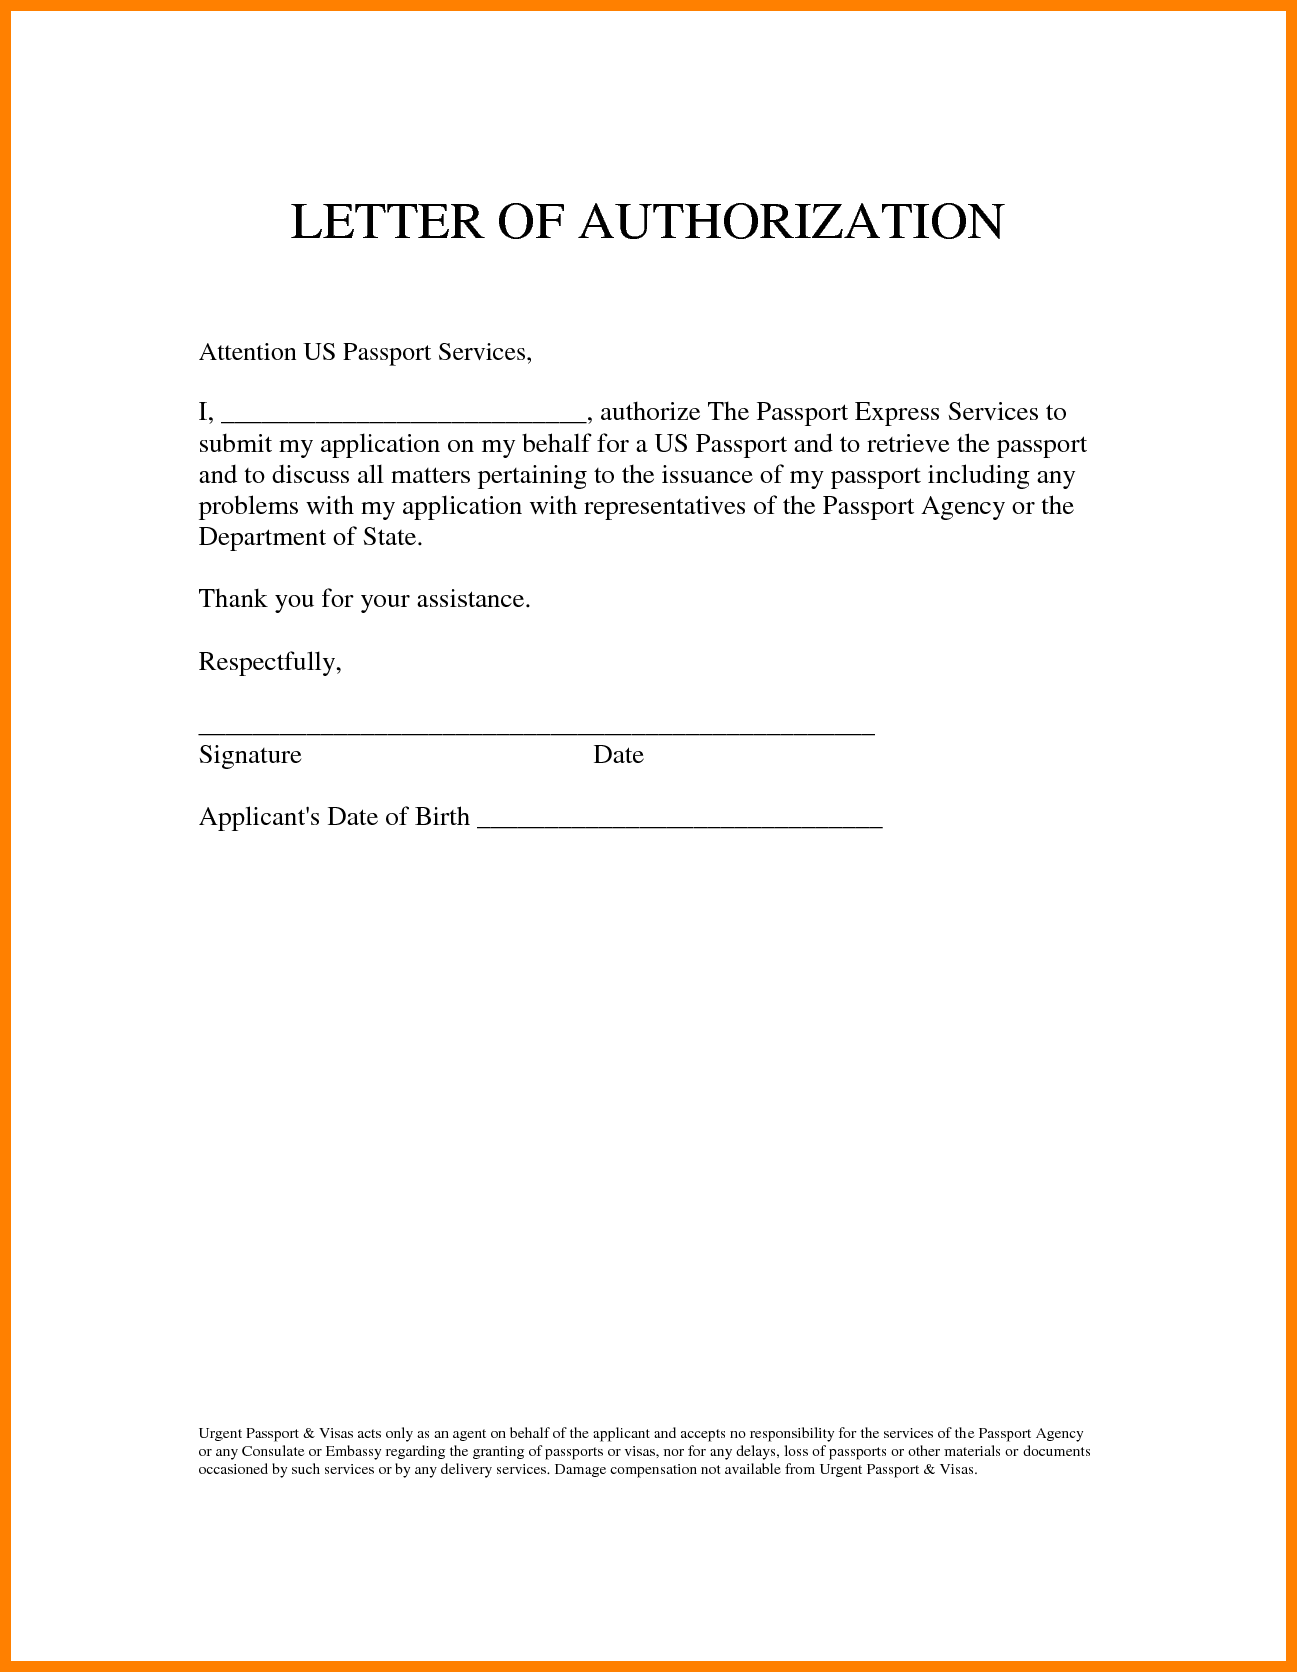 Noc letter format for passport authorization template featuring noc letter format for passport authorization template featuring blank space table canada affidavit and declaration forms spiritdancerdesigns Image collections